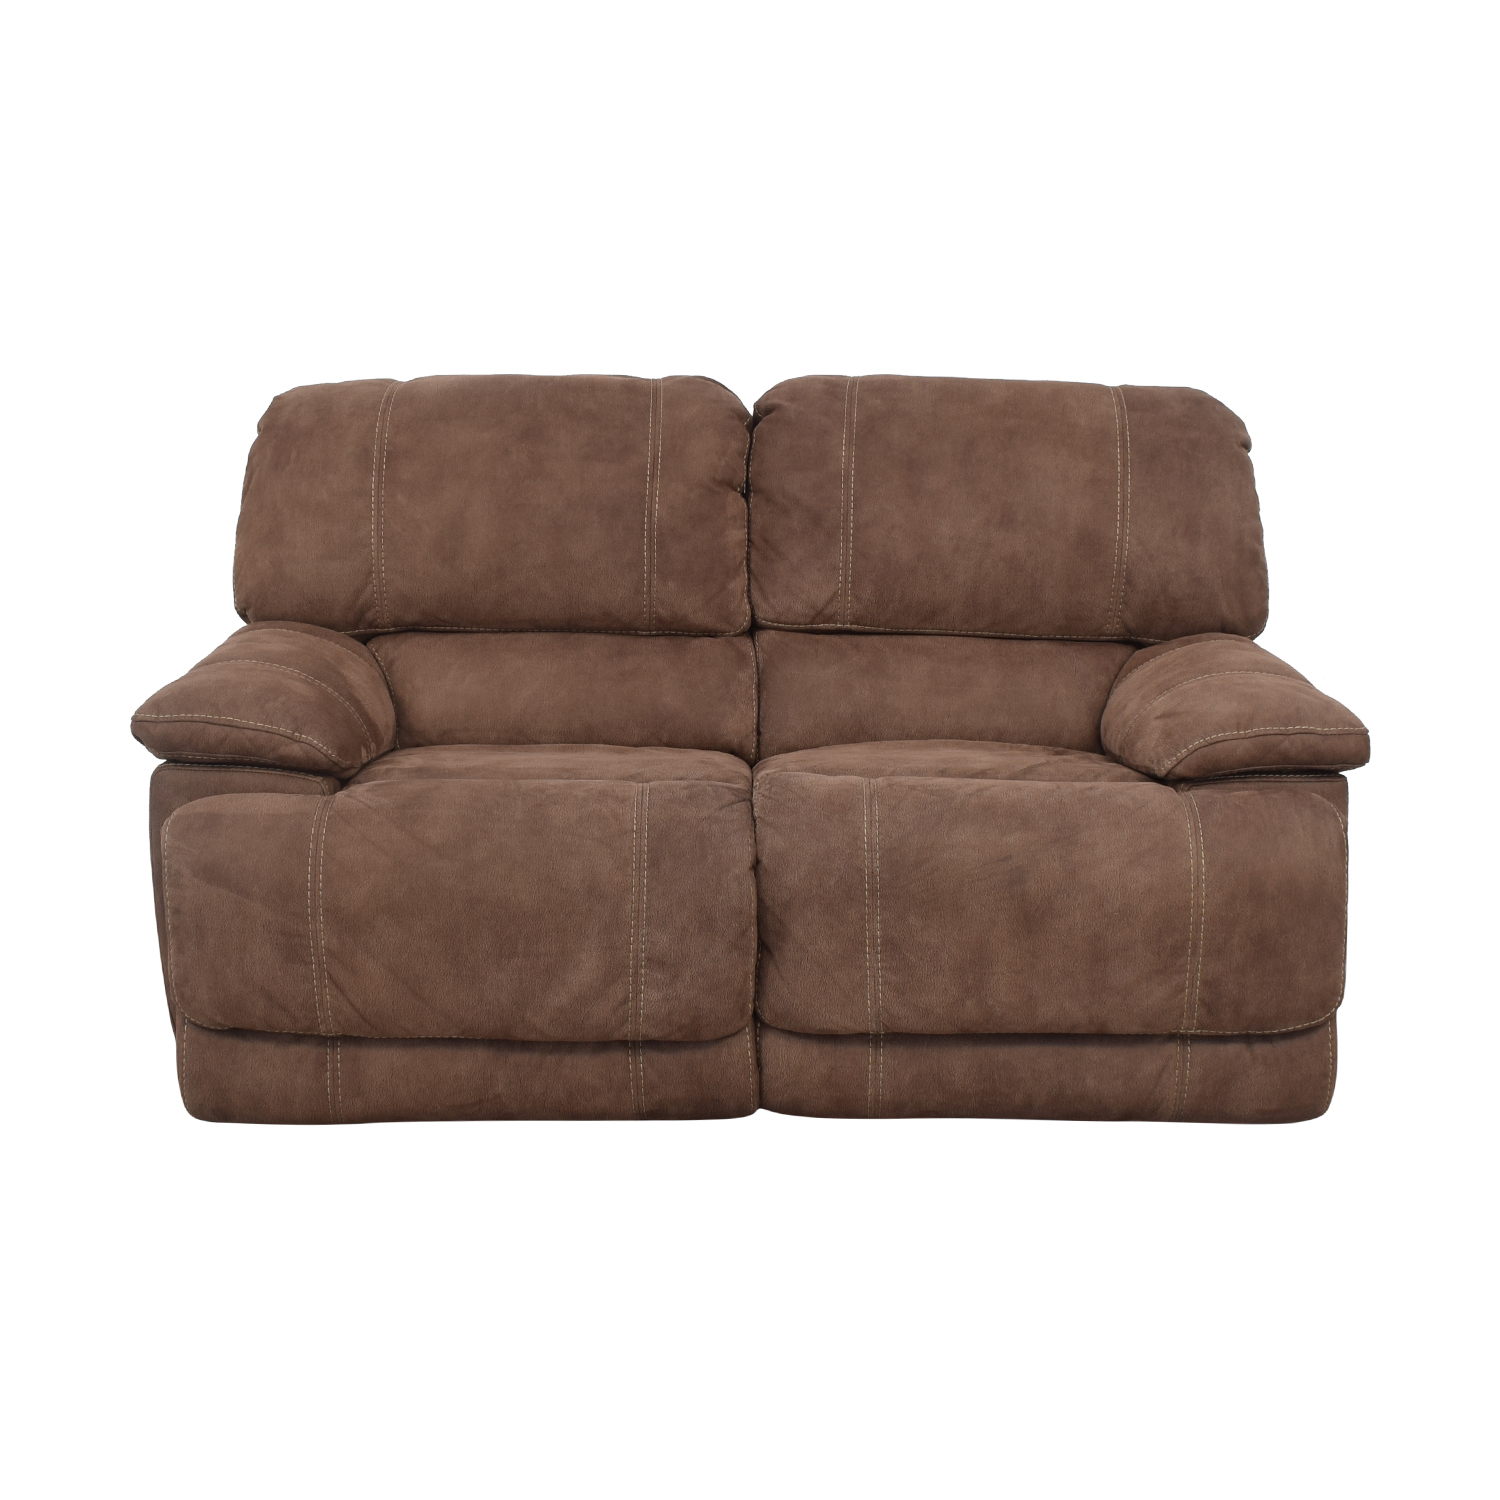 Macy's Macy's Power Recliner Loveseat Sofa used